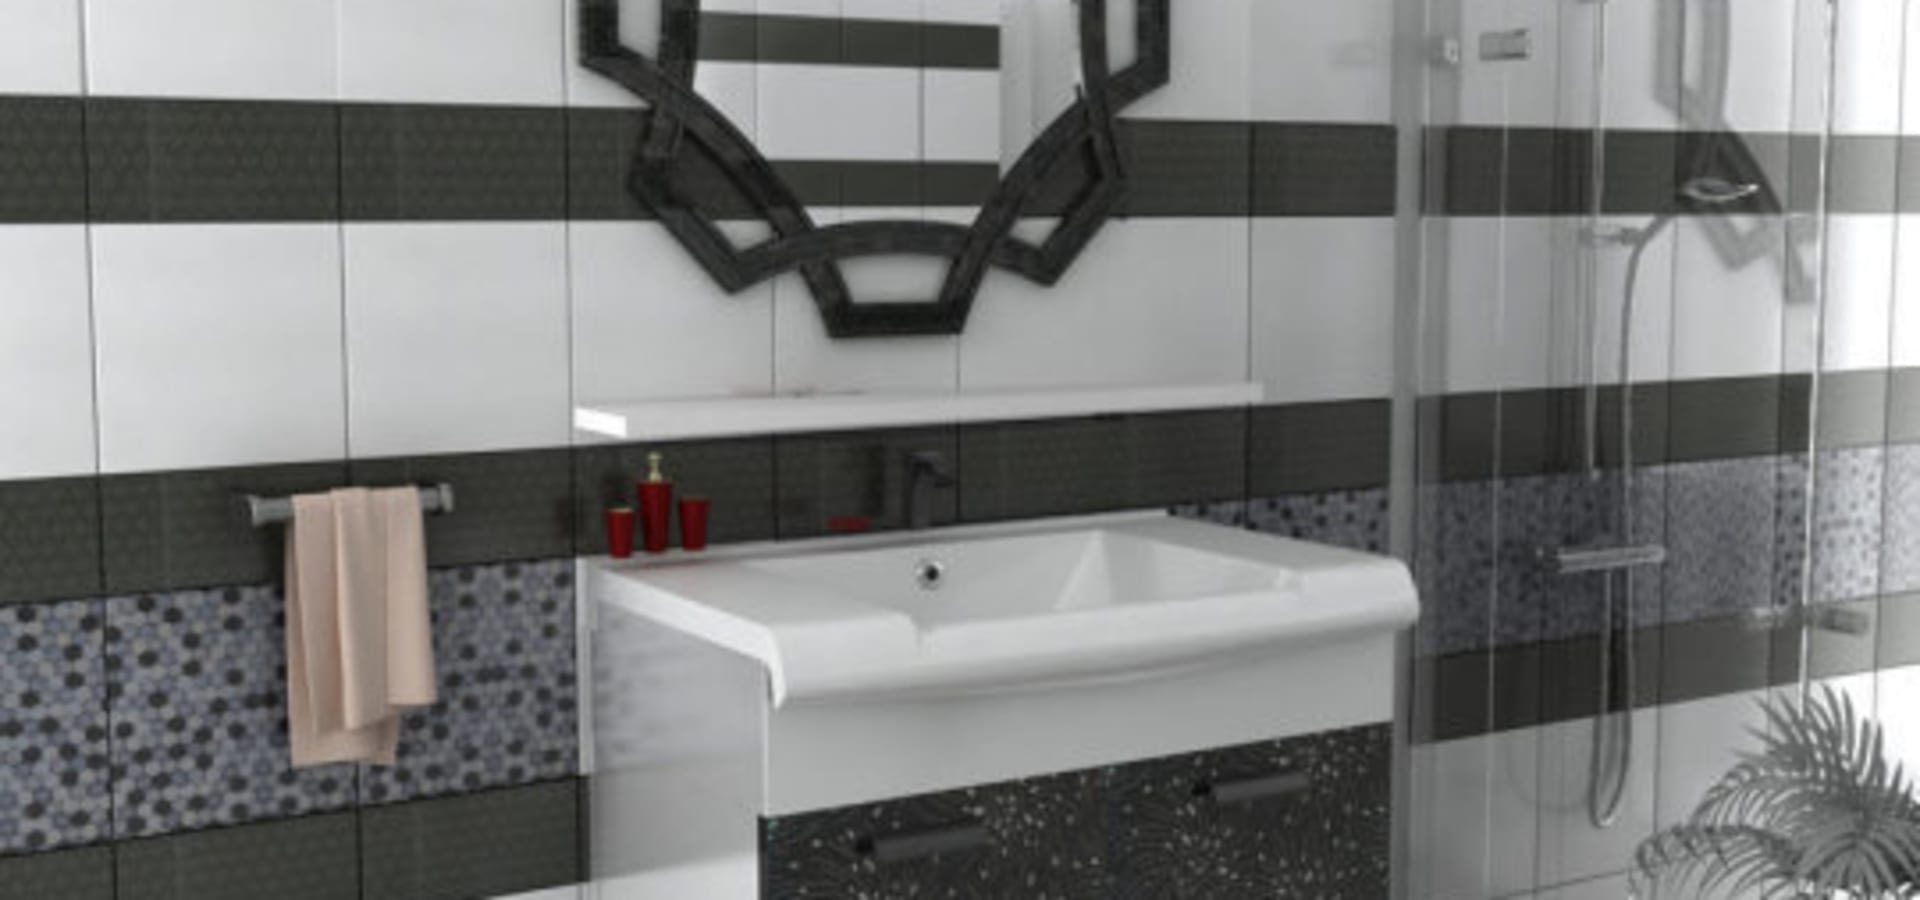 dekoset elik kap mobilya san tic ltd ti banyo dolab homify. Black Bedroom Furniture Sets. Home Design Ideas